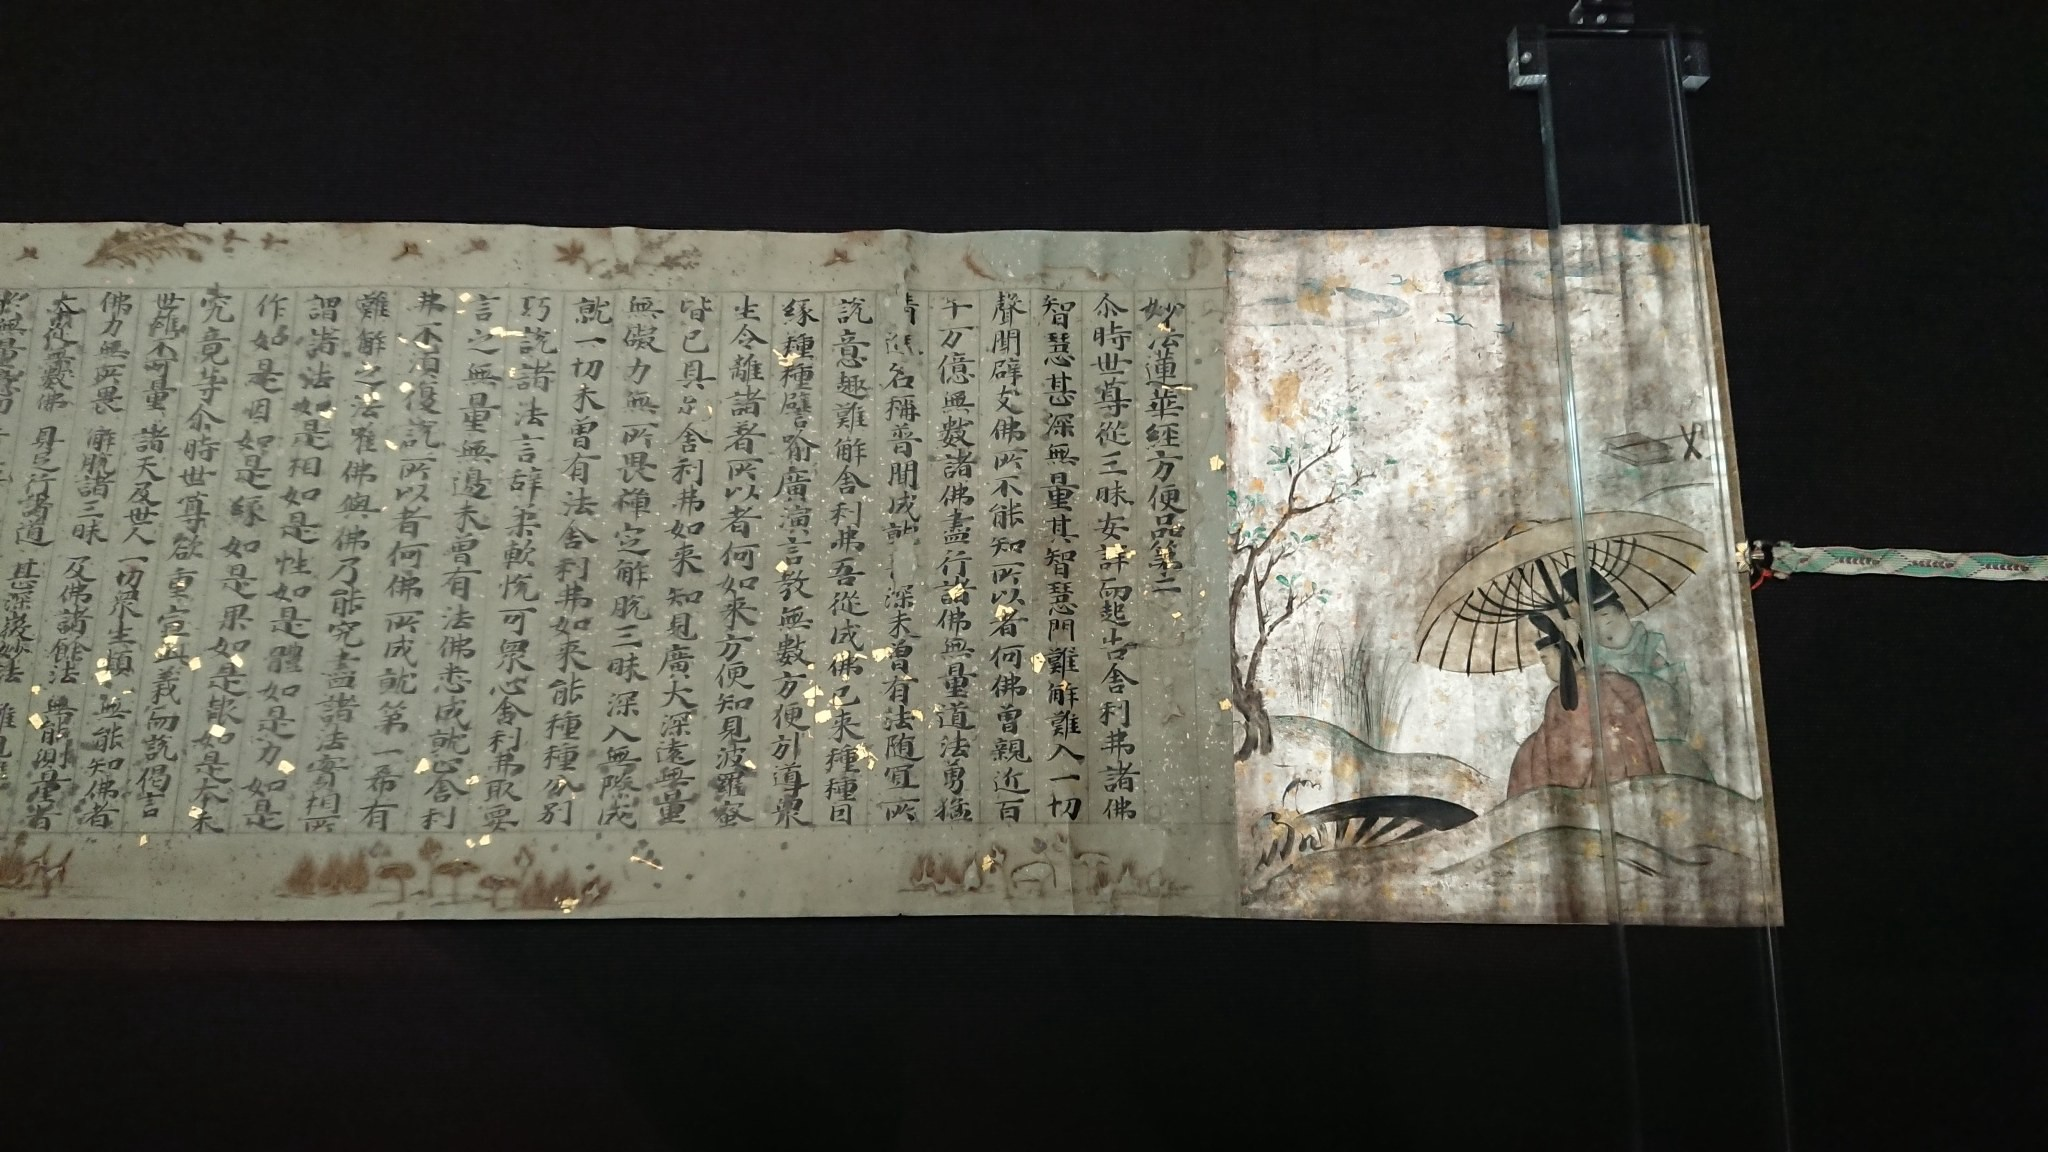 A beautiful old scroll depicting a sample from the Lotus Sutra. The paper is flecked here and there with gold.